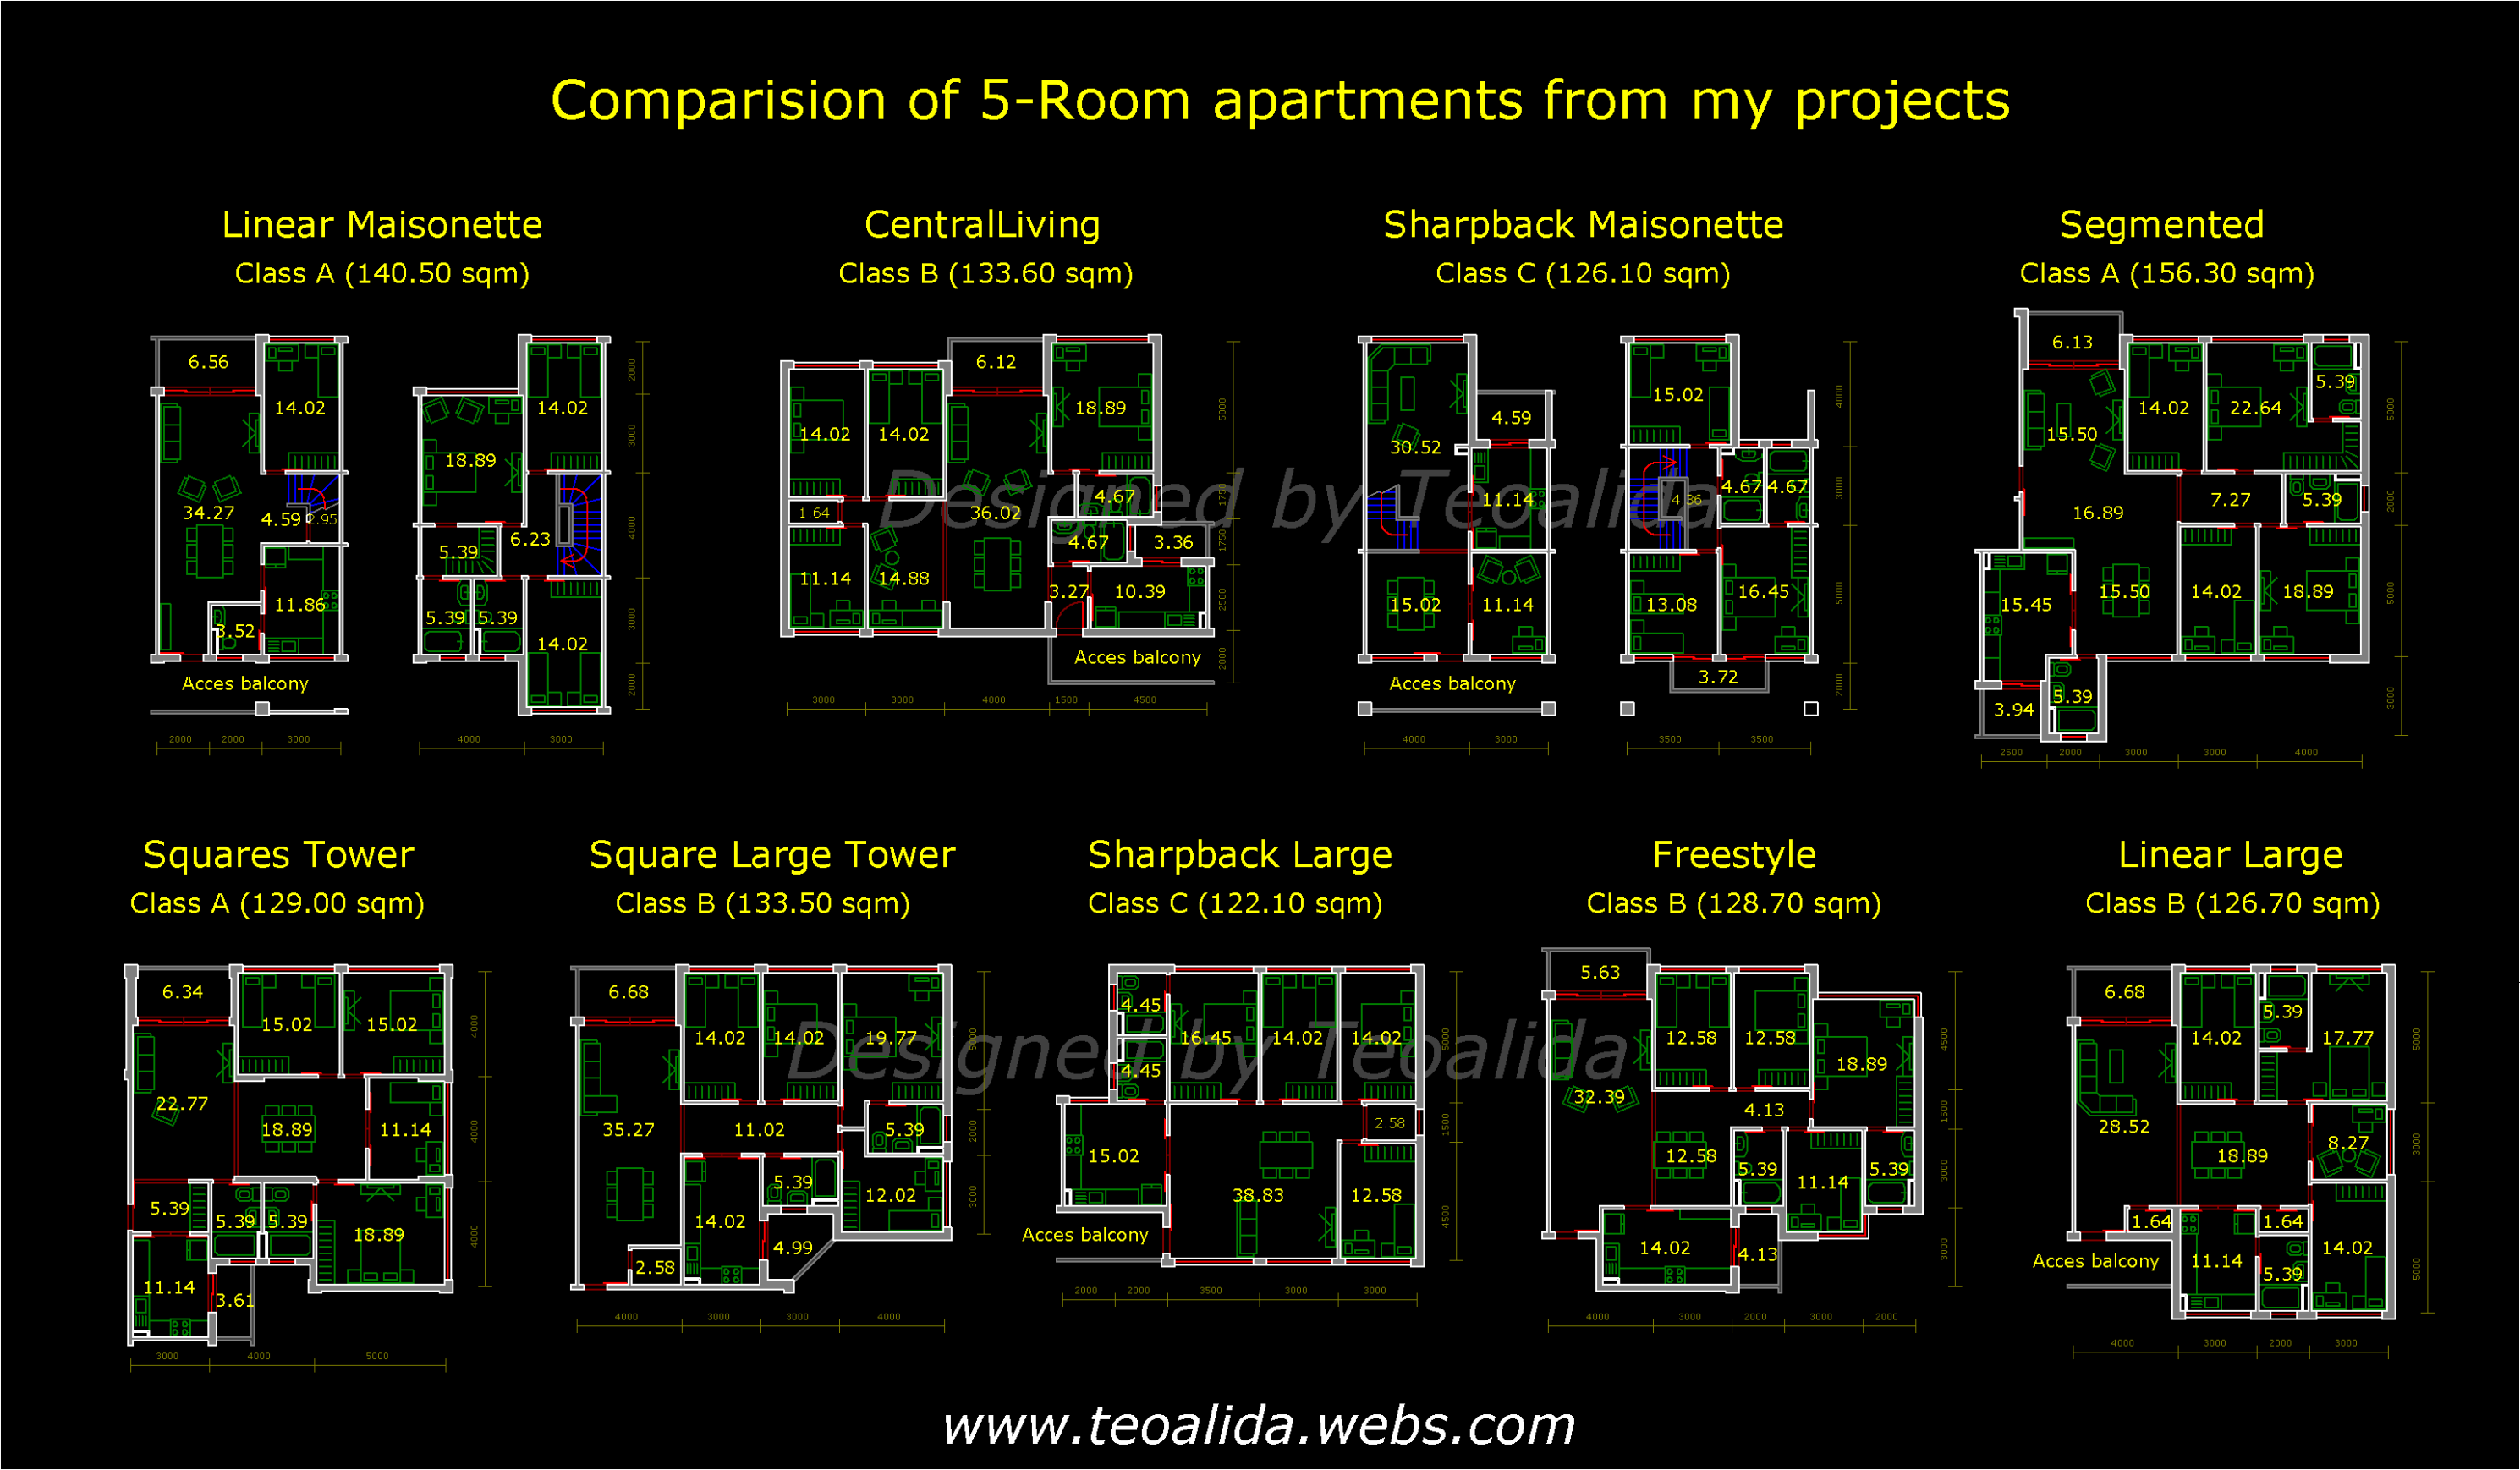 Apartment plans 11-11 sqm designed by me - Teoalida's website